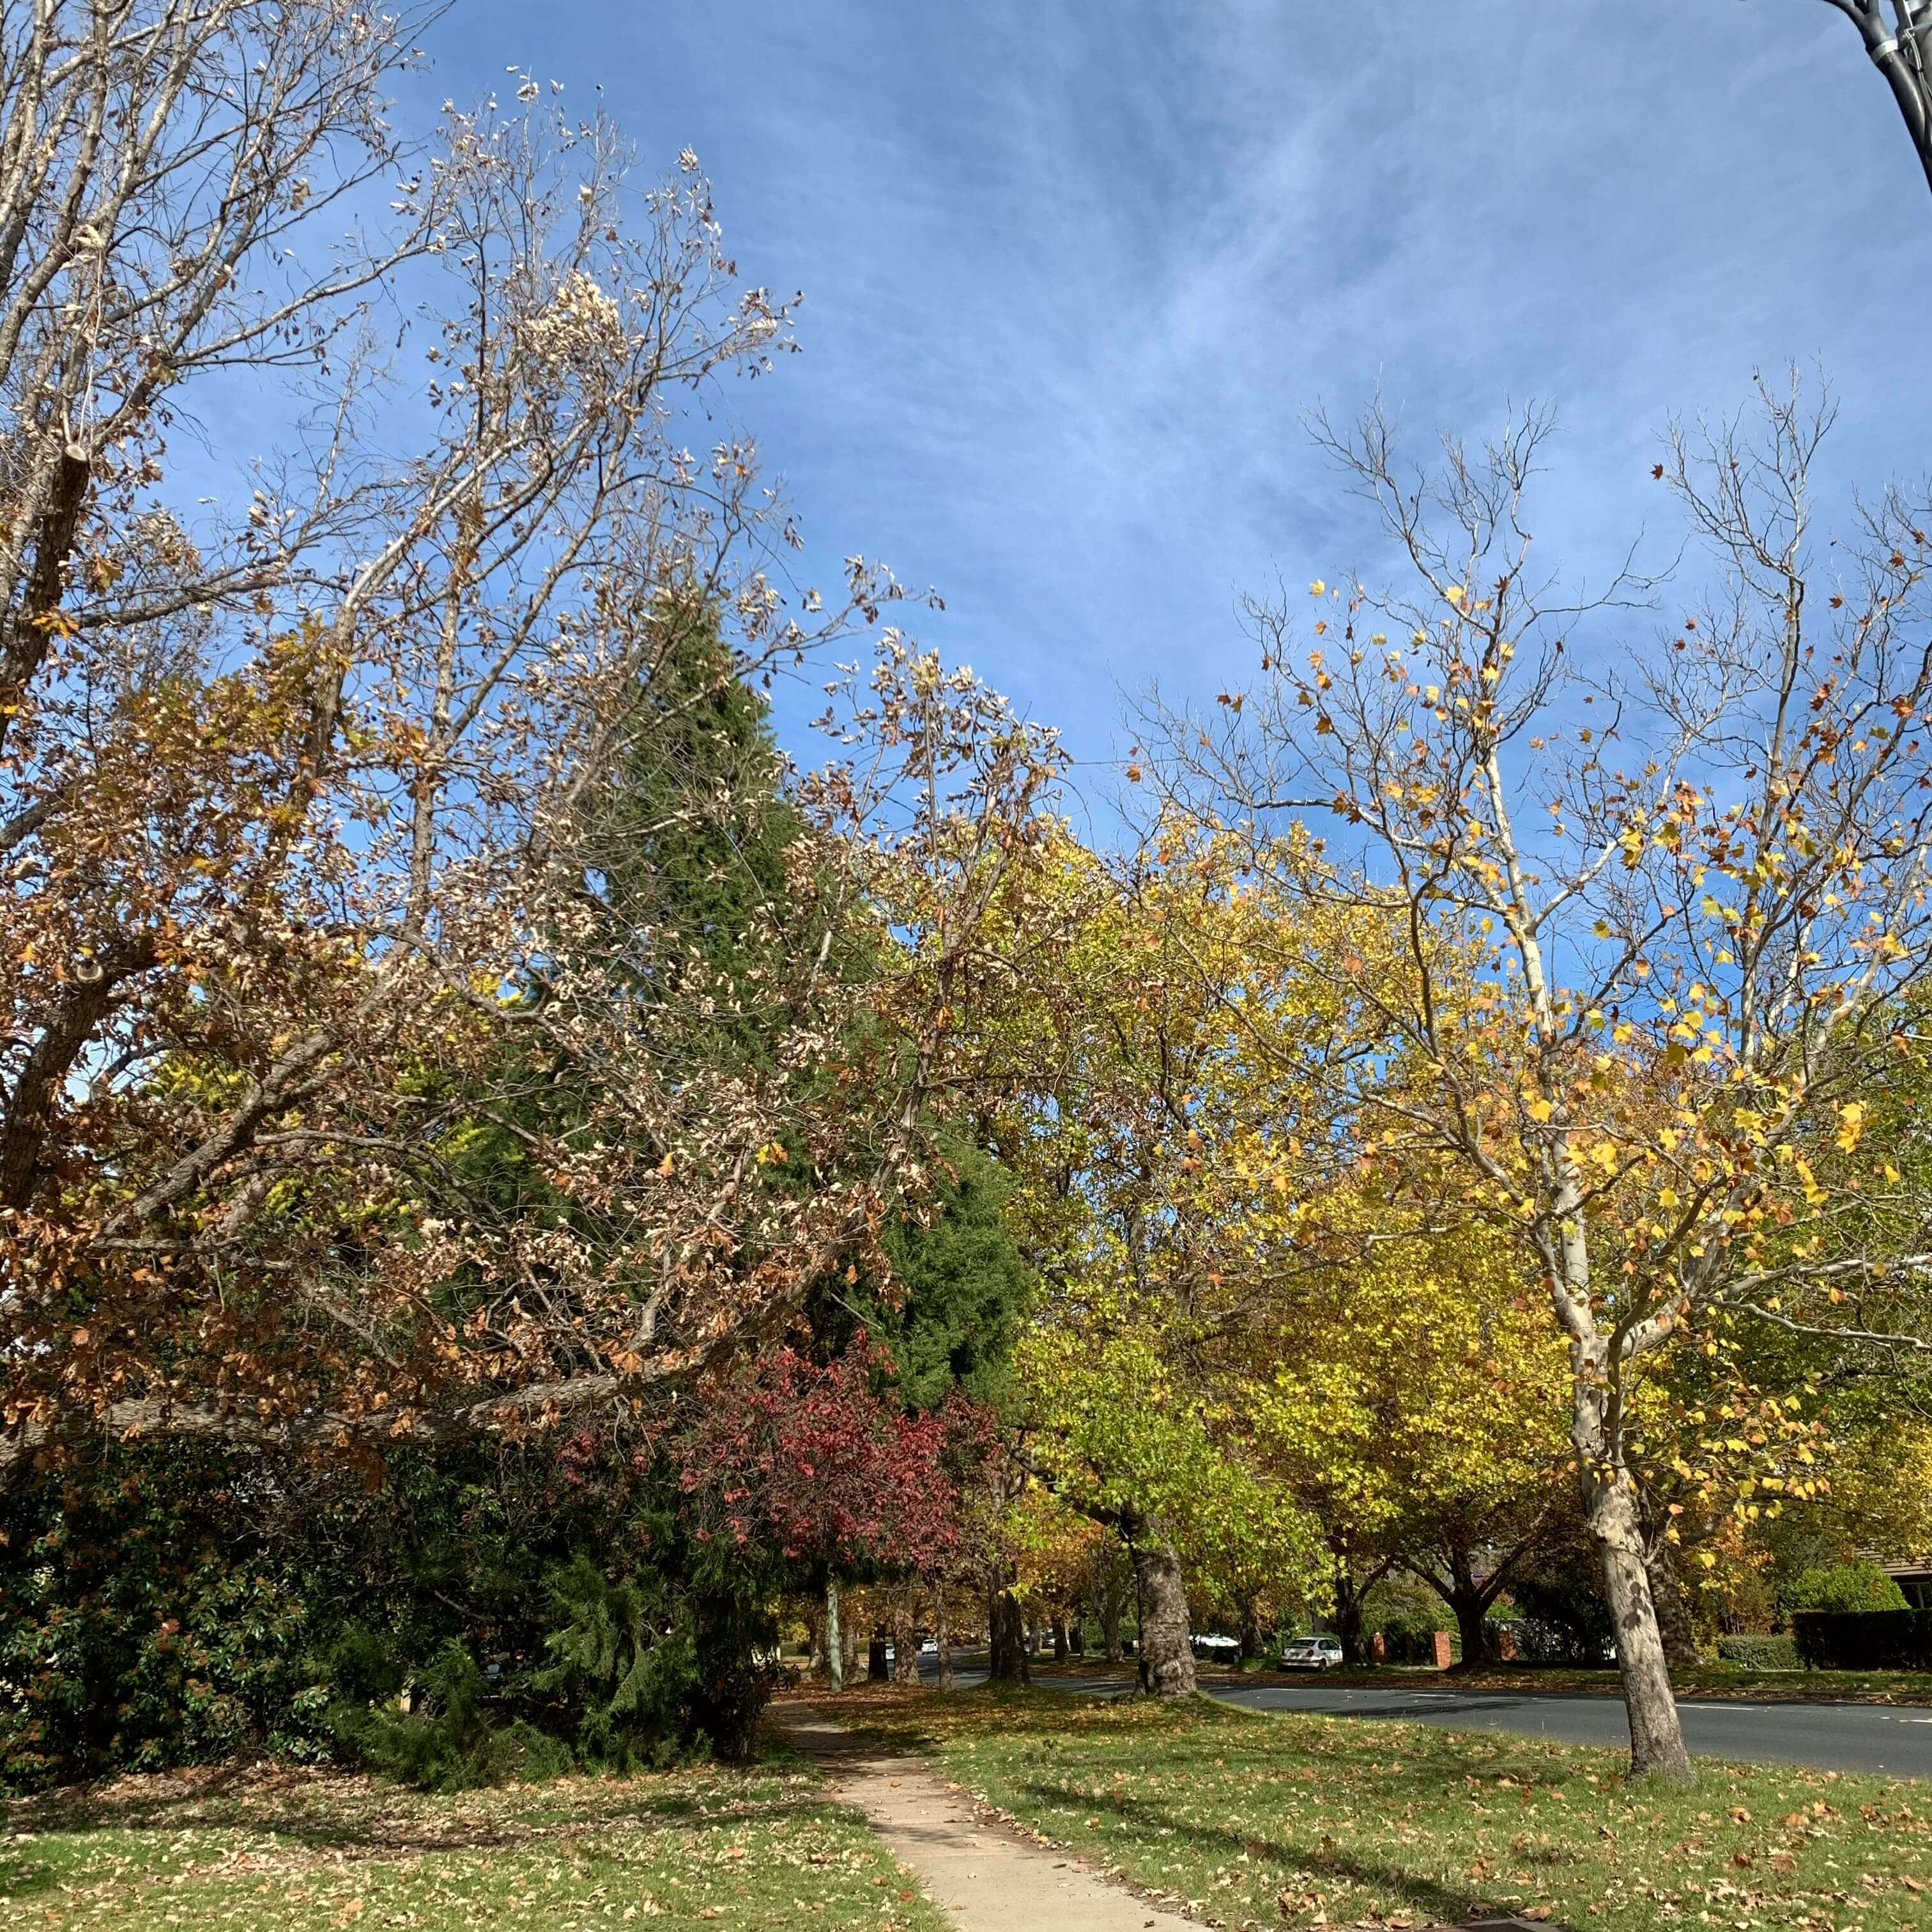 Autumn trees, Canberra